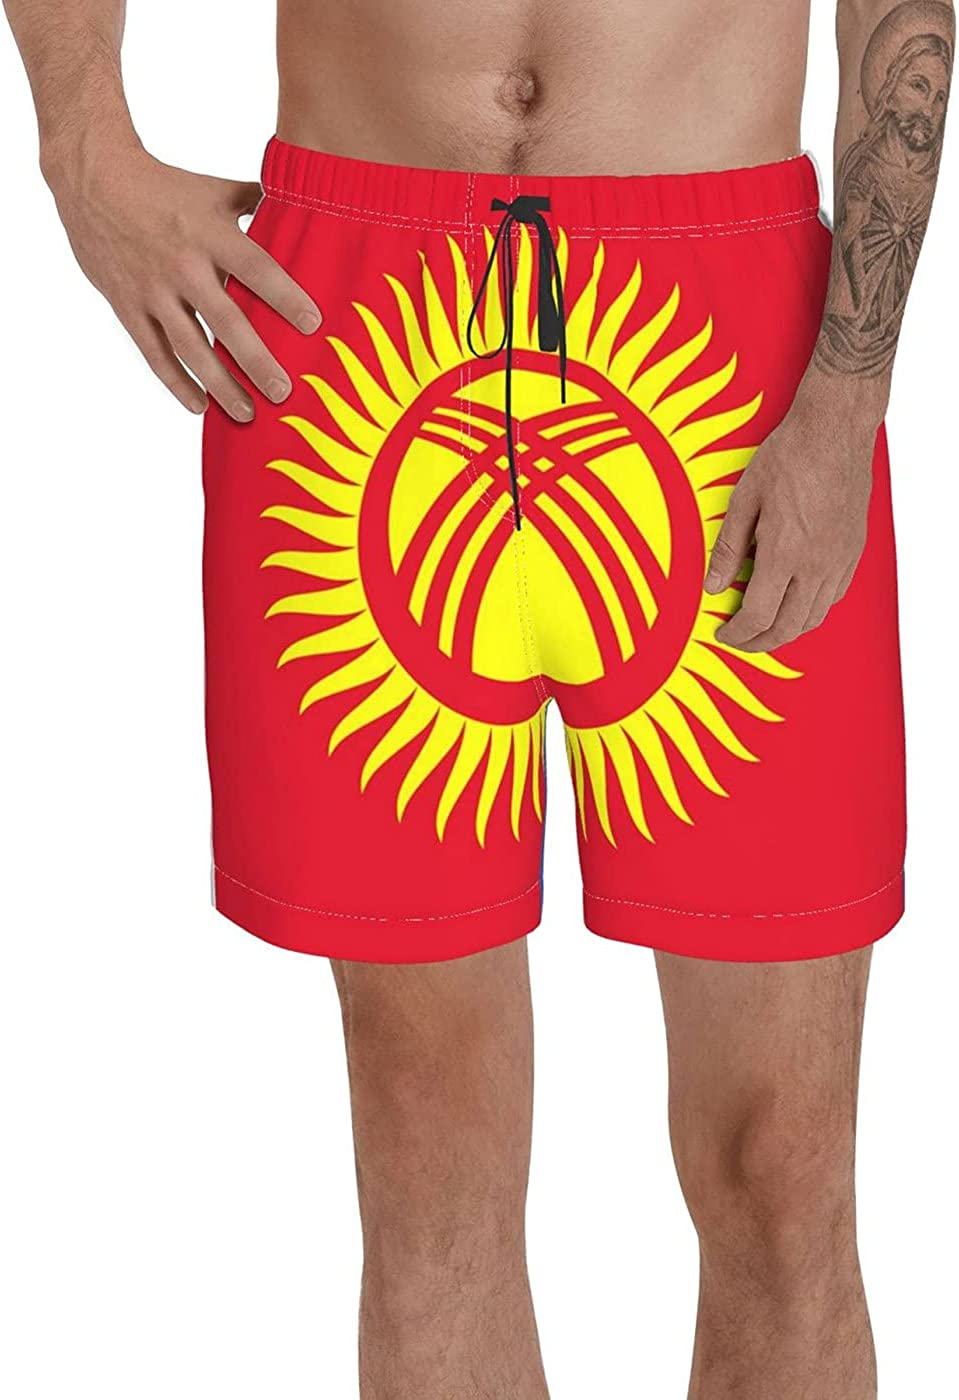 Count Kyrgyzstan Flag Men's 3D Printed Funny Summer Quick Dry Swim Short Board Shorts with